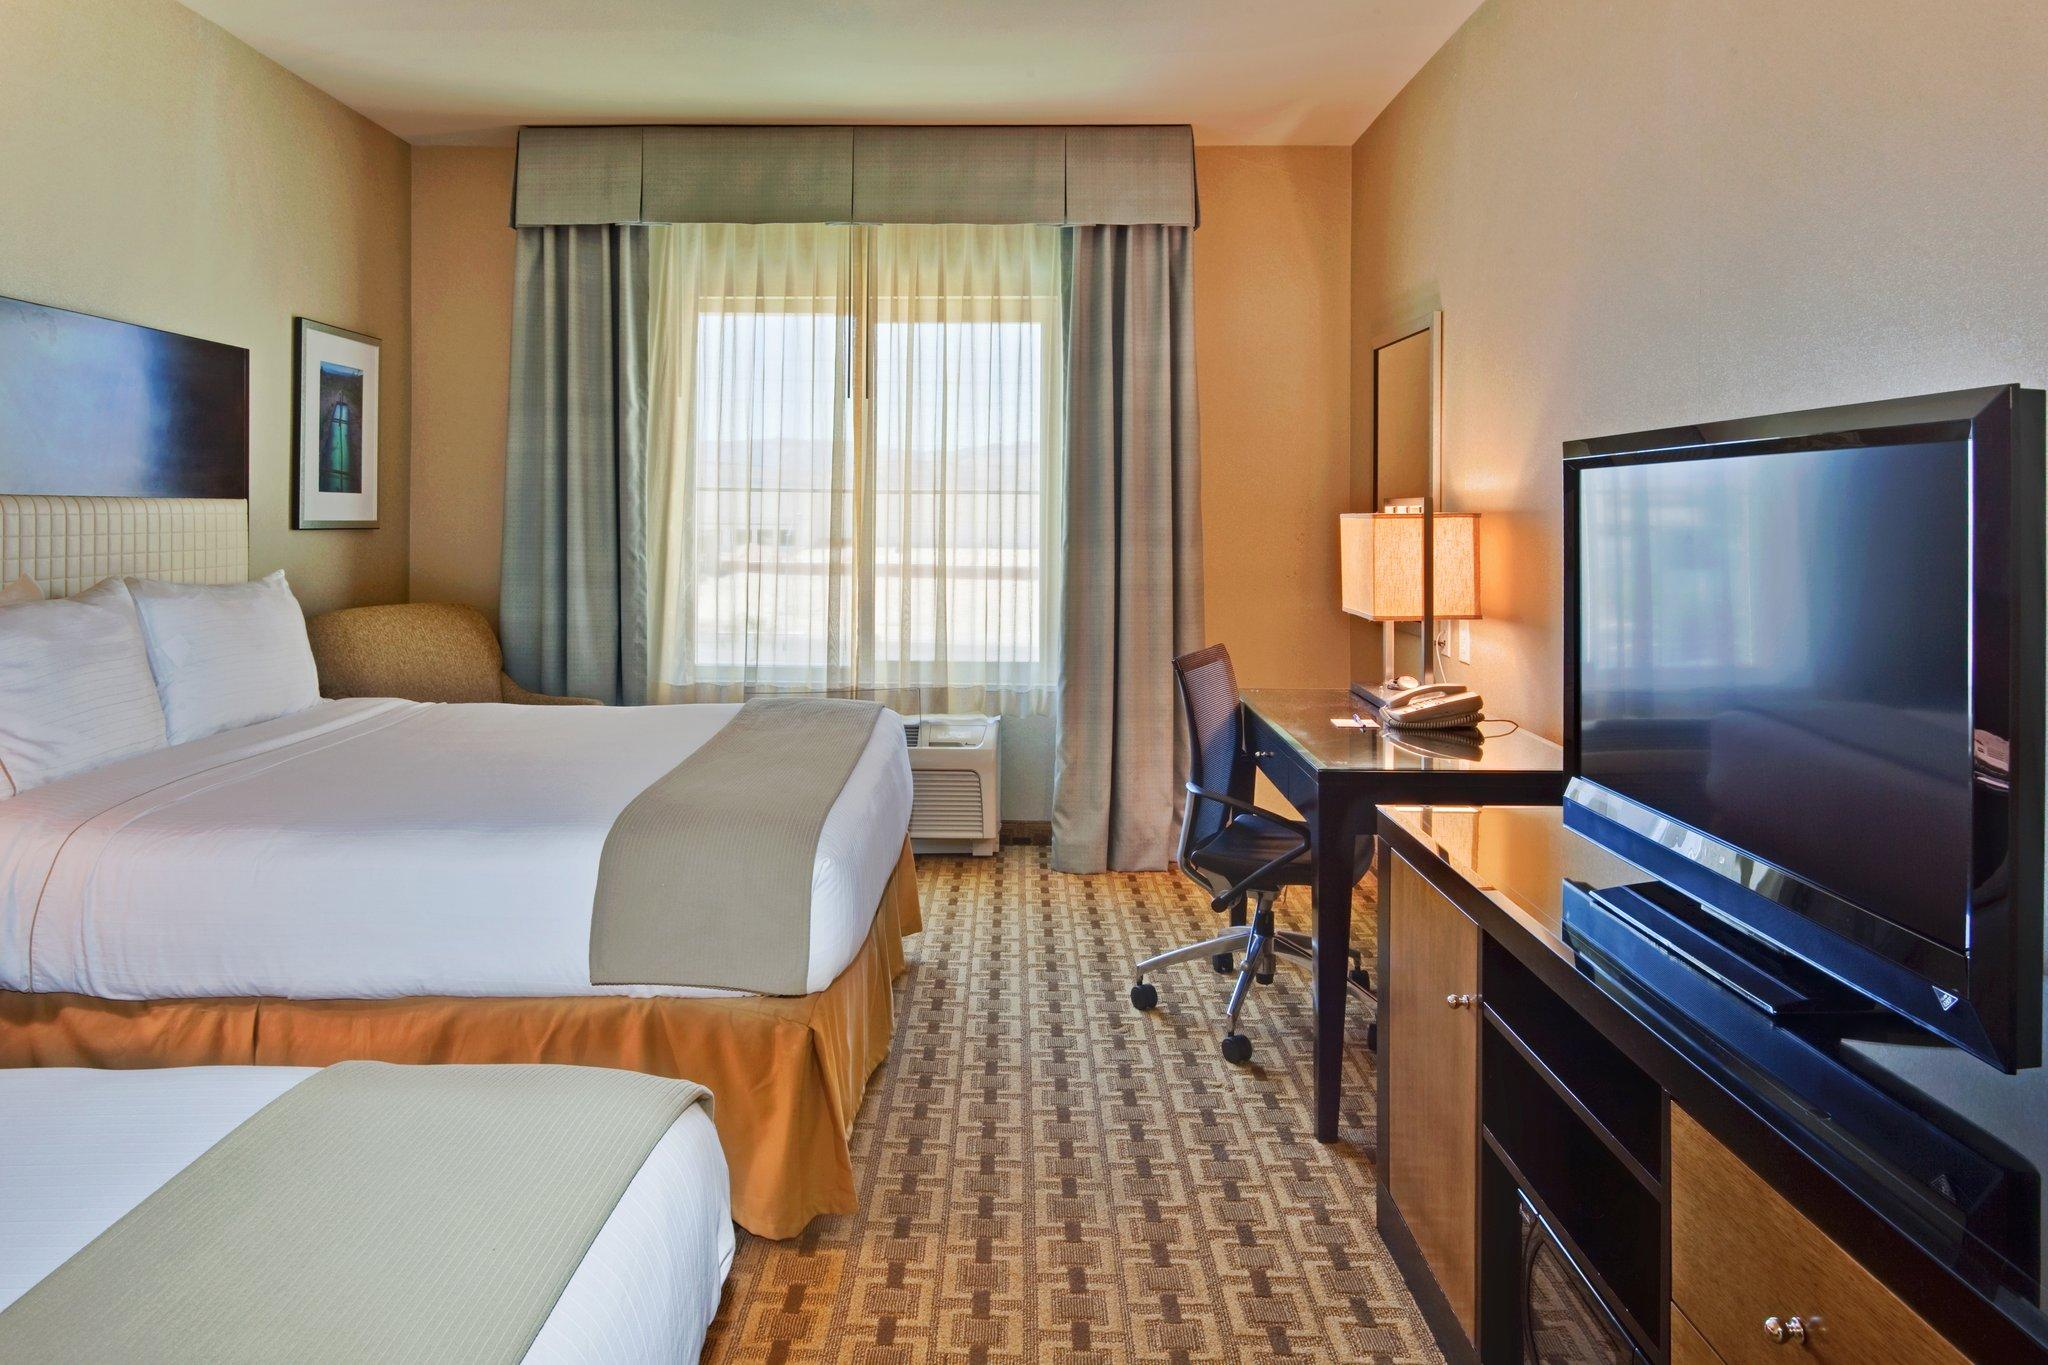 Holiday Inn Express Hotel and Suites Las Vegas 215 Beltway